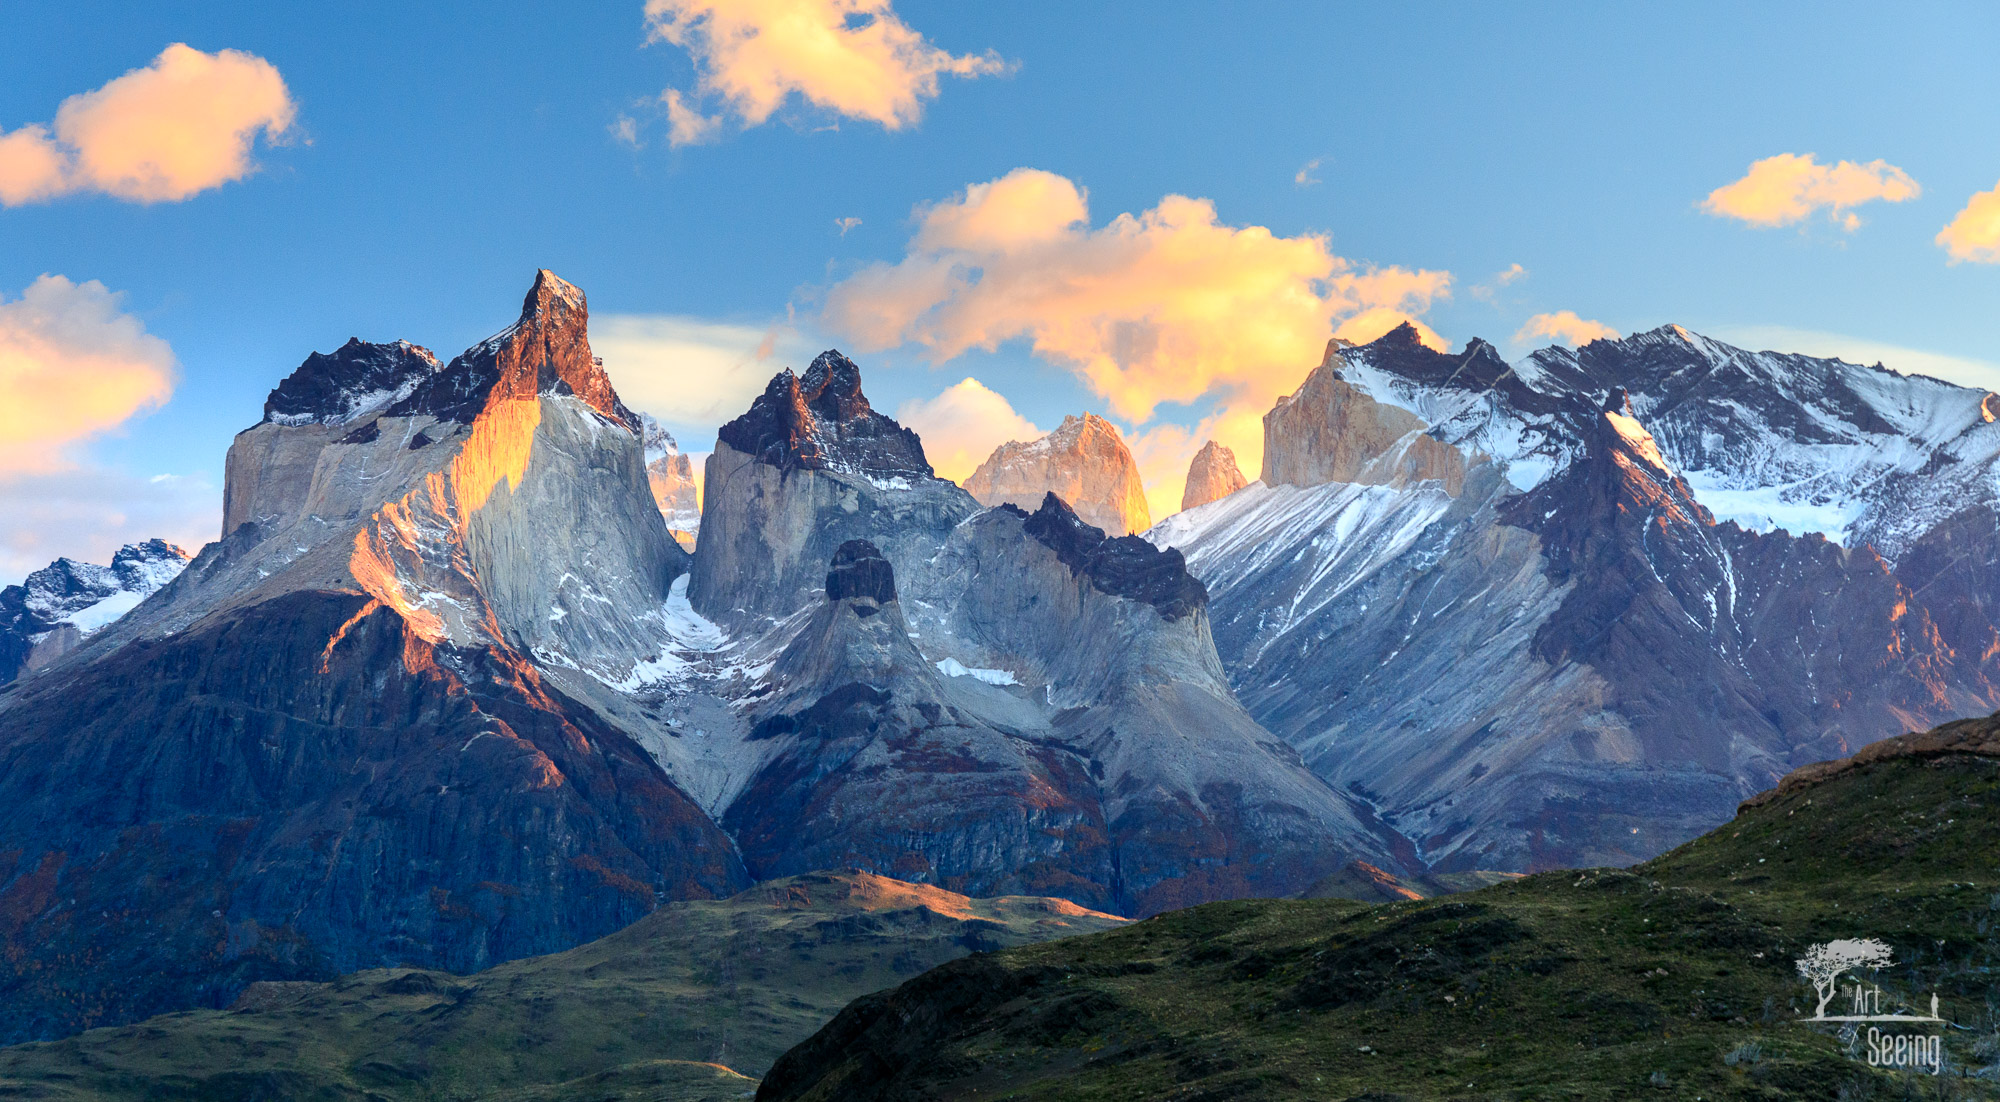 Patagonia Photography and Travel Guide 3 image